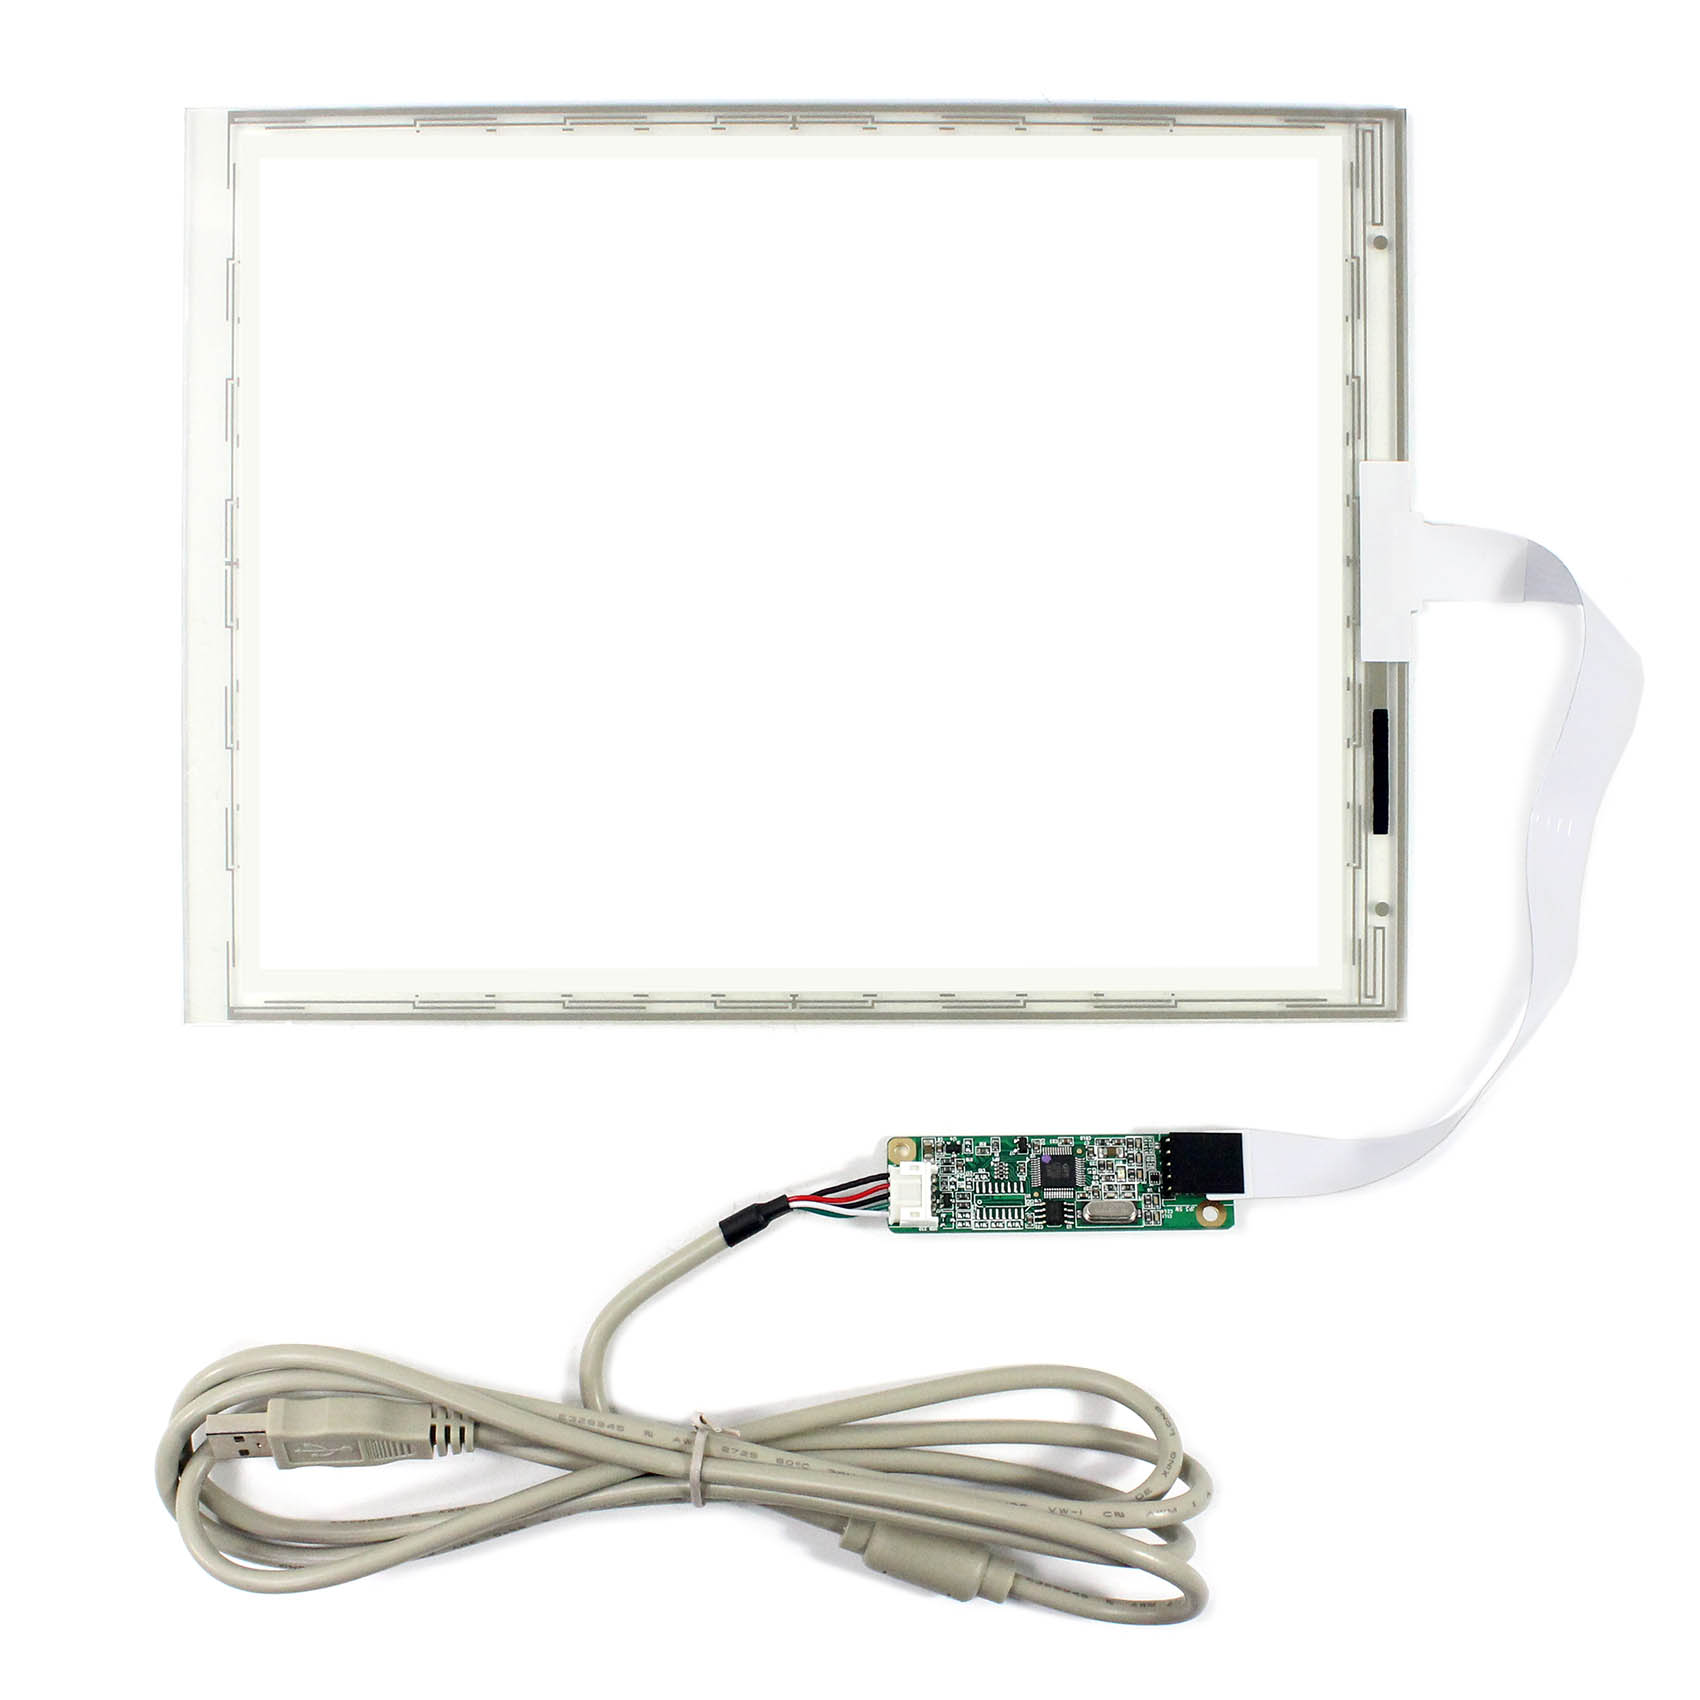 10,4 Inch 5-draht Touch Panel 216,7x164,5mm Controller Karte Mit 5-draht Usb Controller Karte